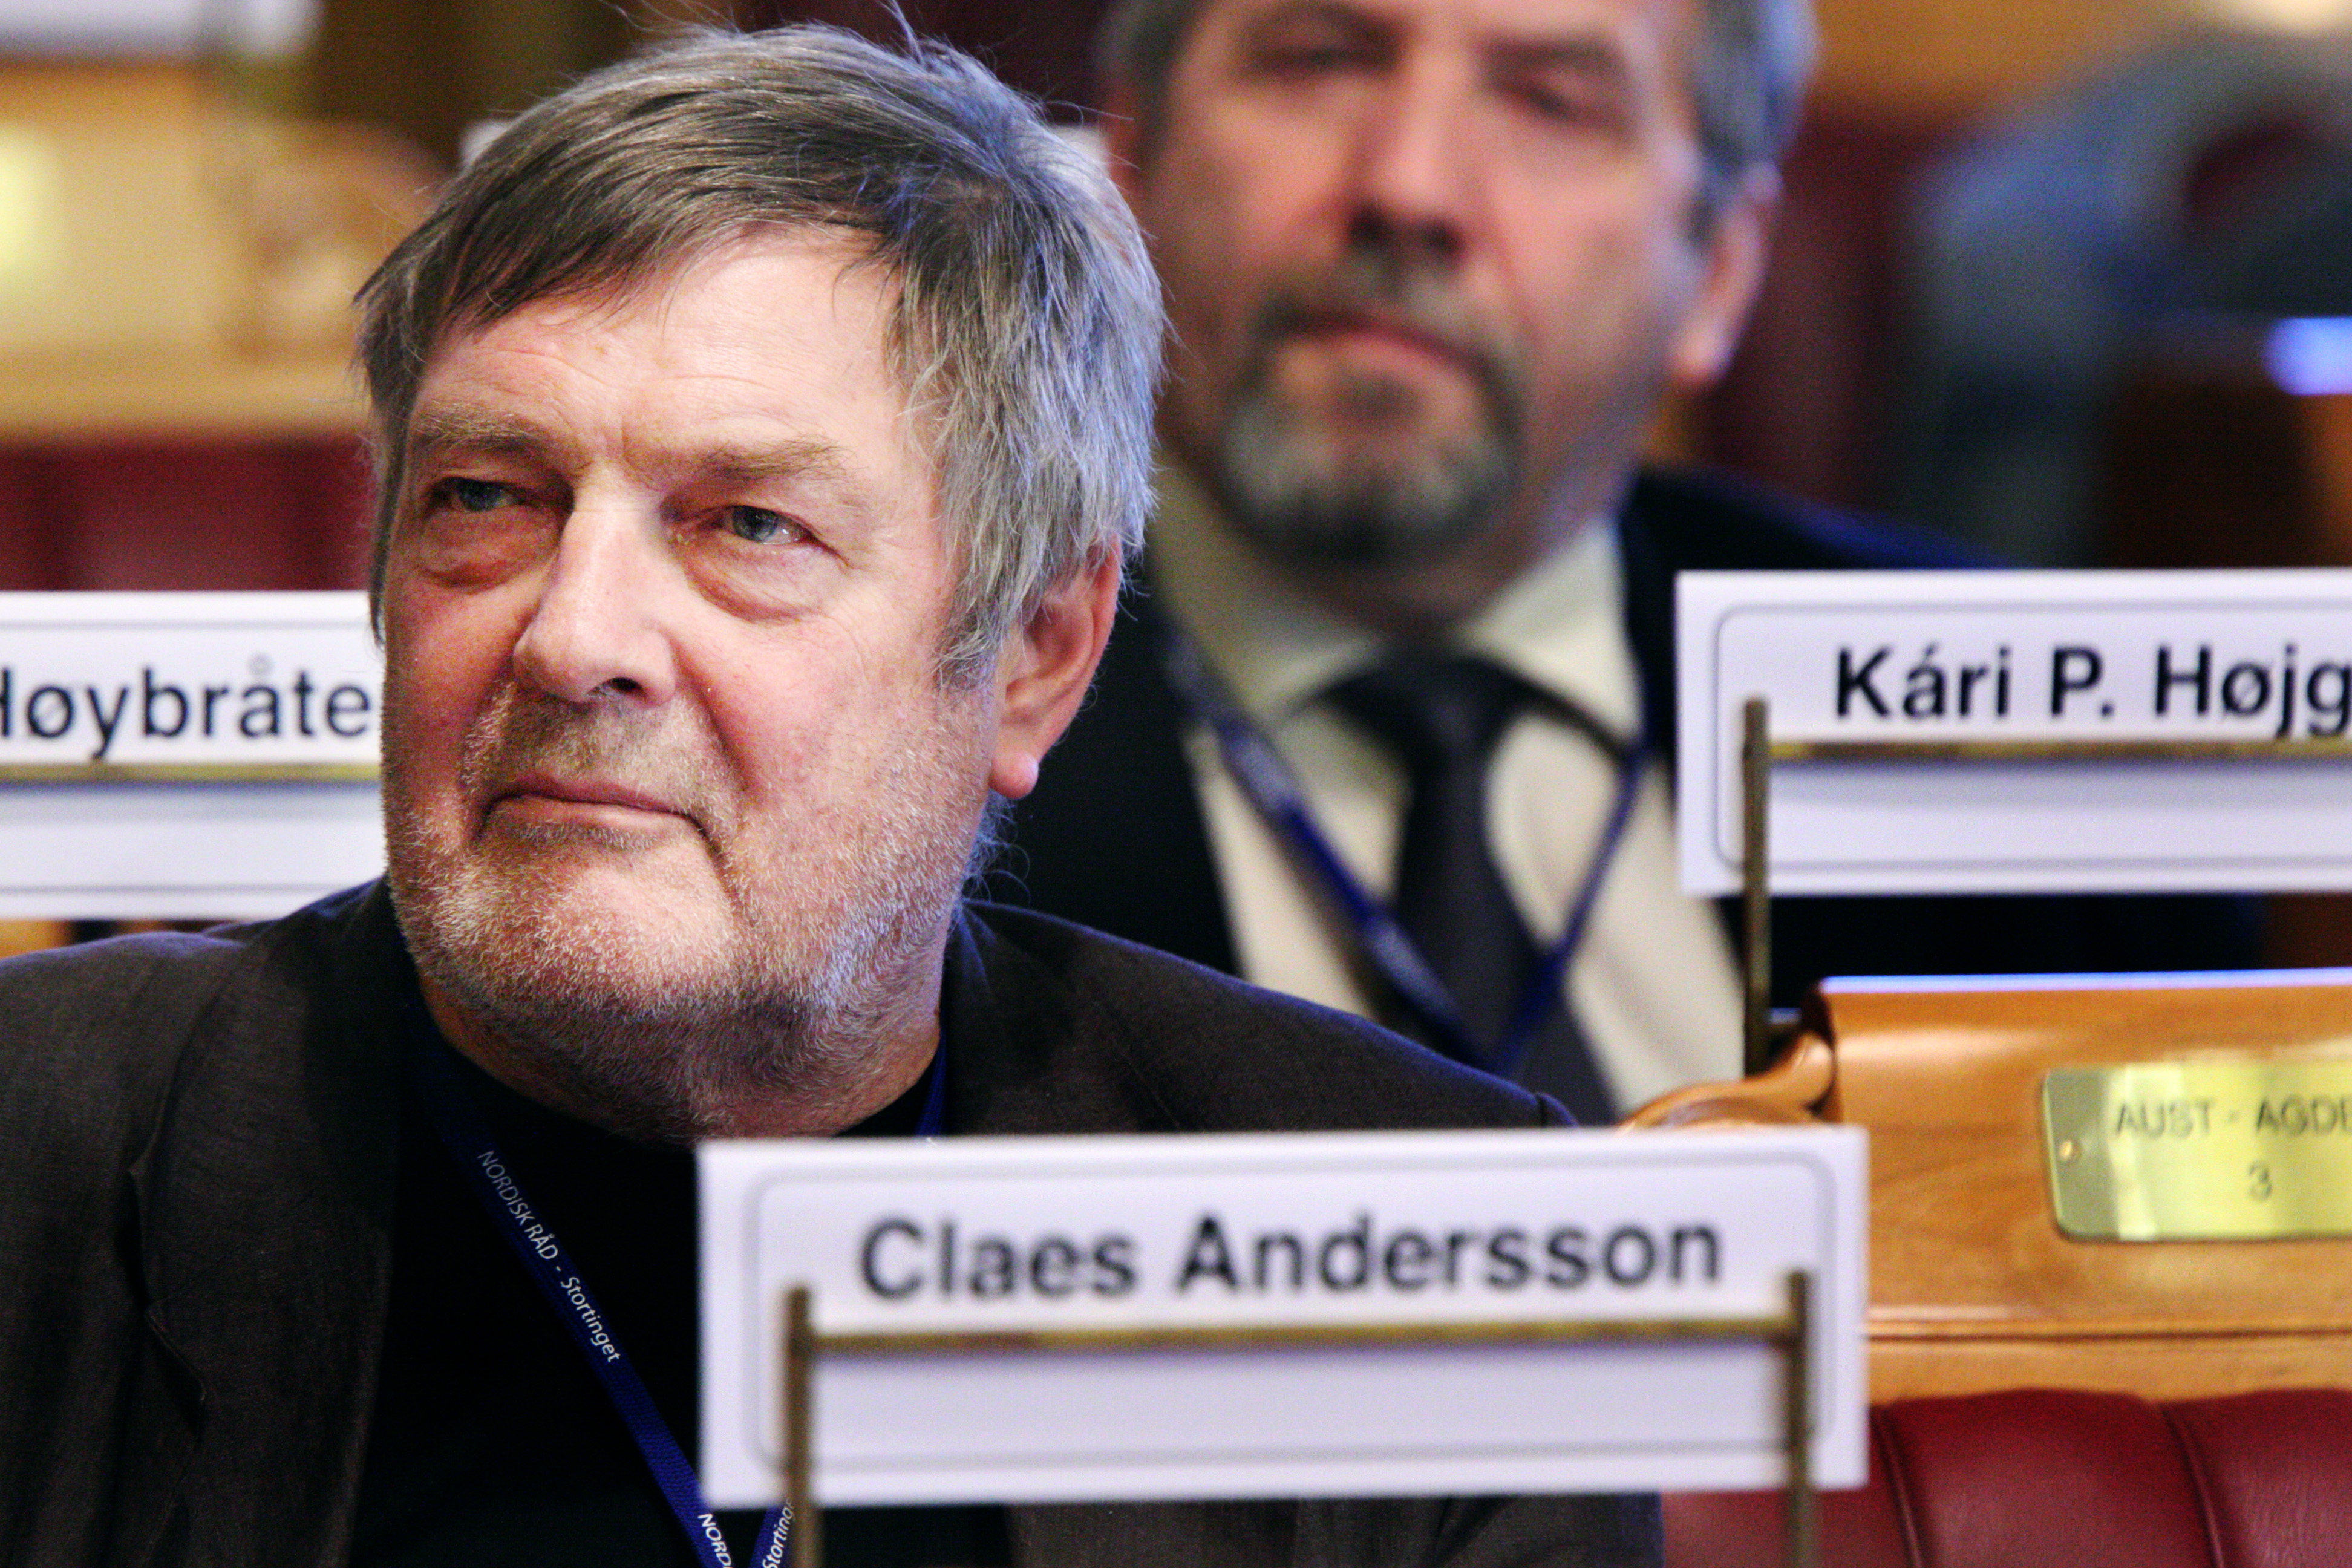 Andersson Claes